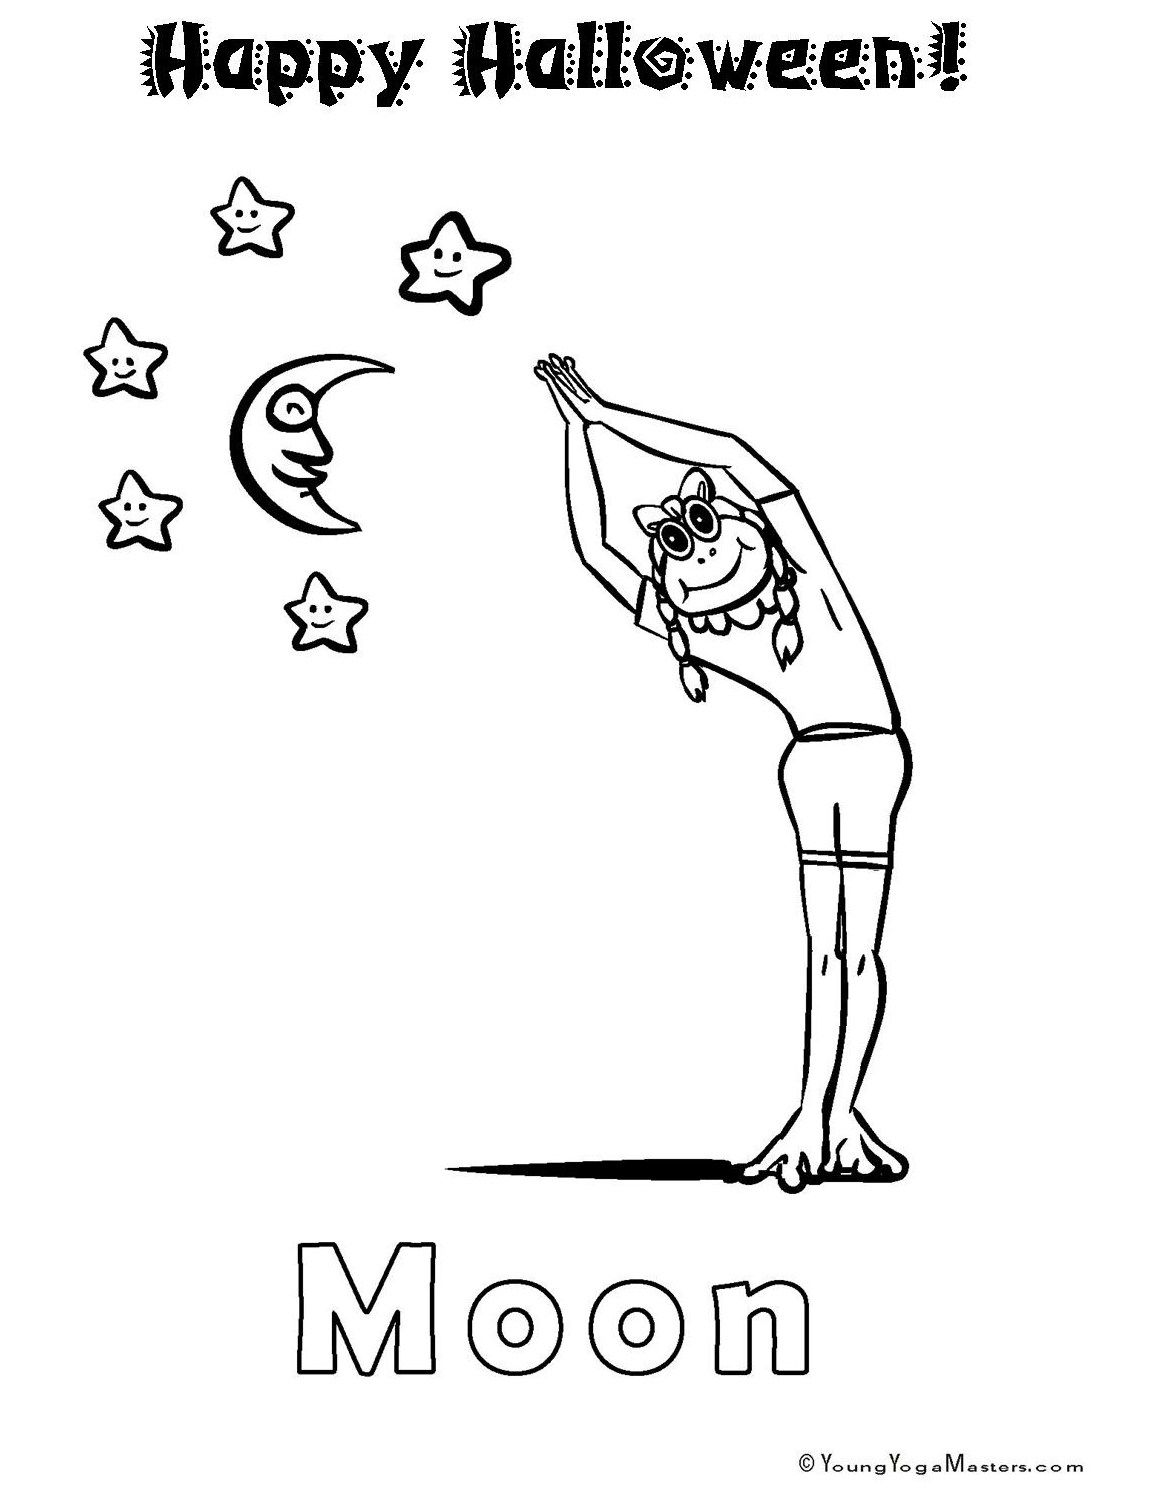 Halloween Moon Coloring Sheet Link To Story And Rhyme With Yoga